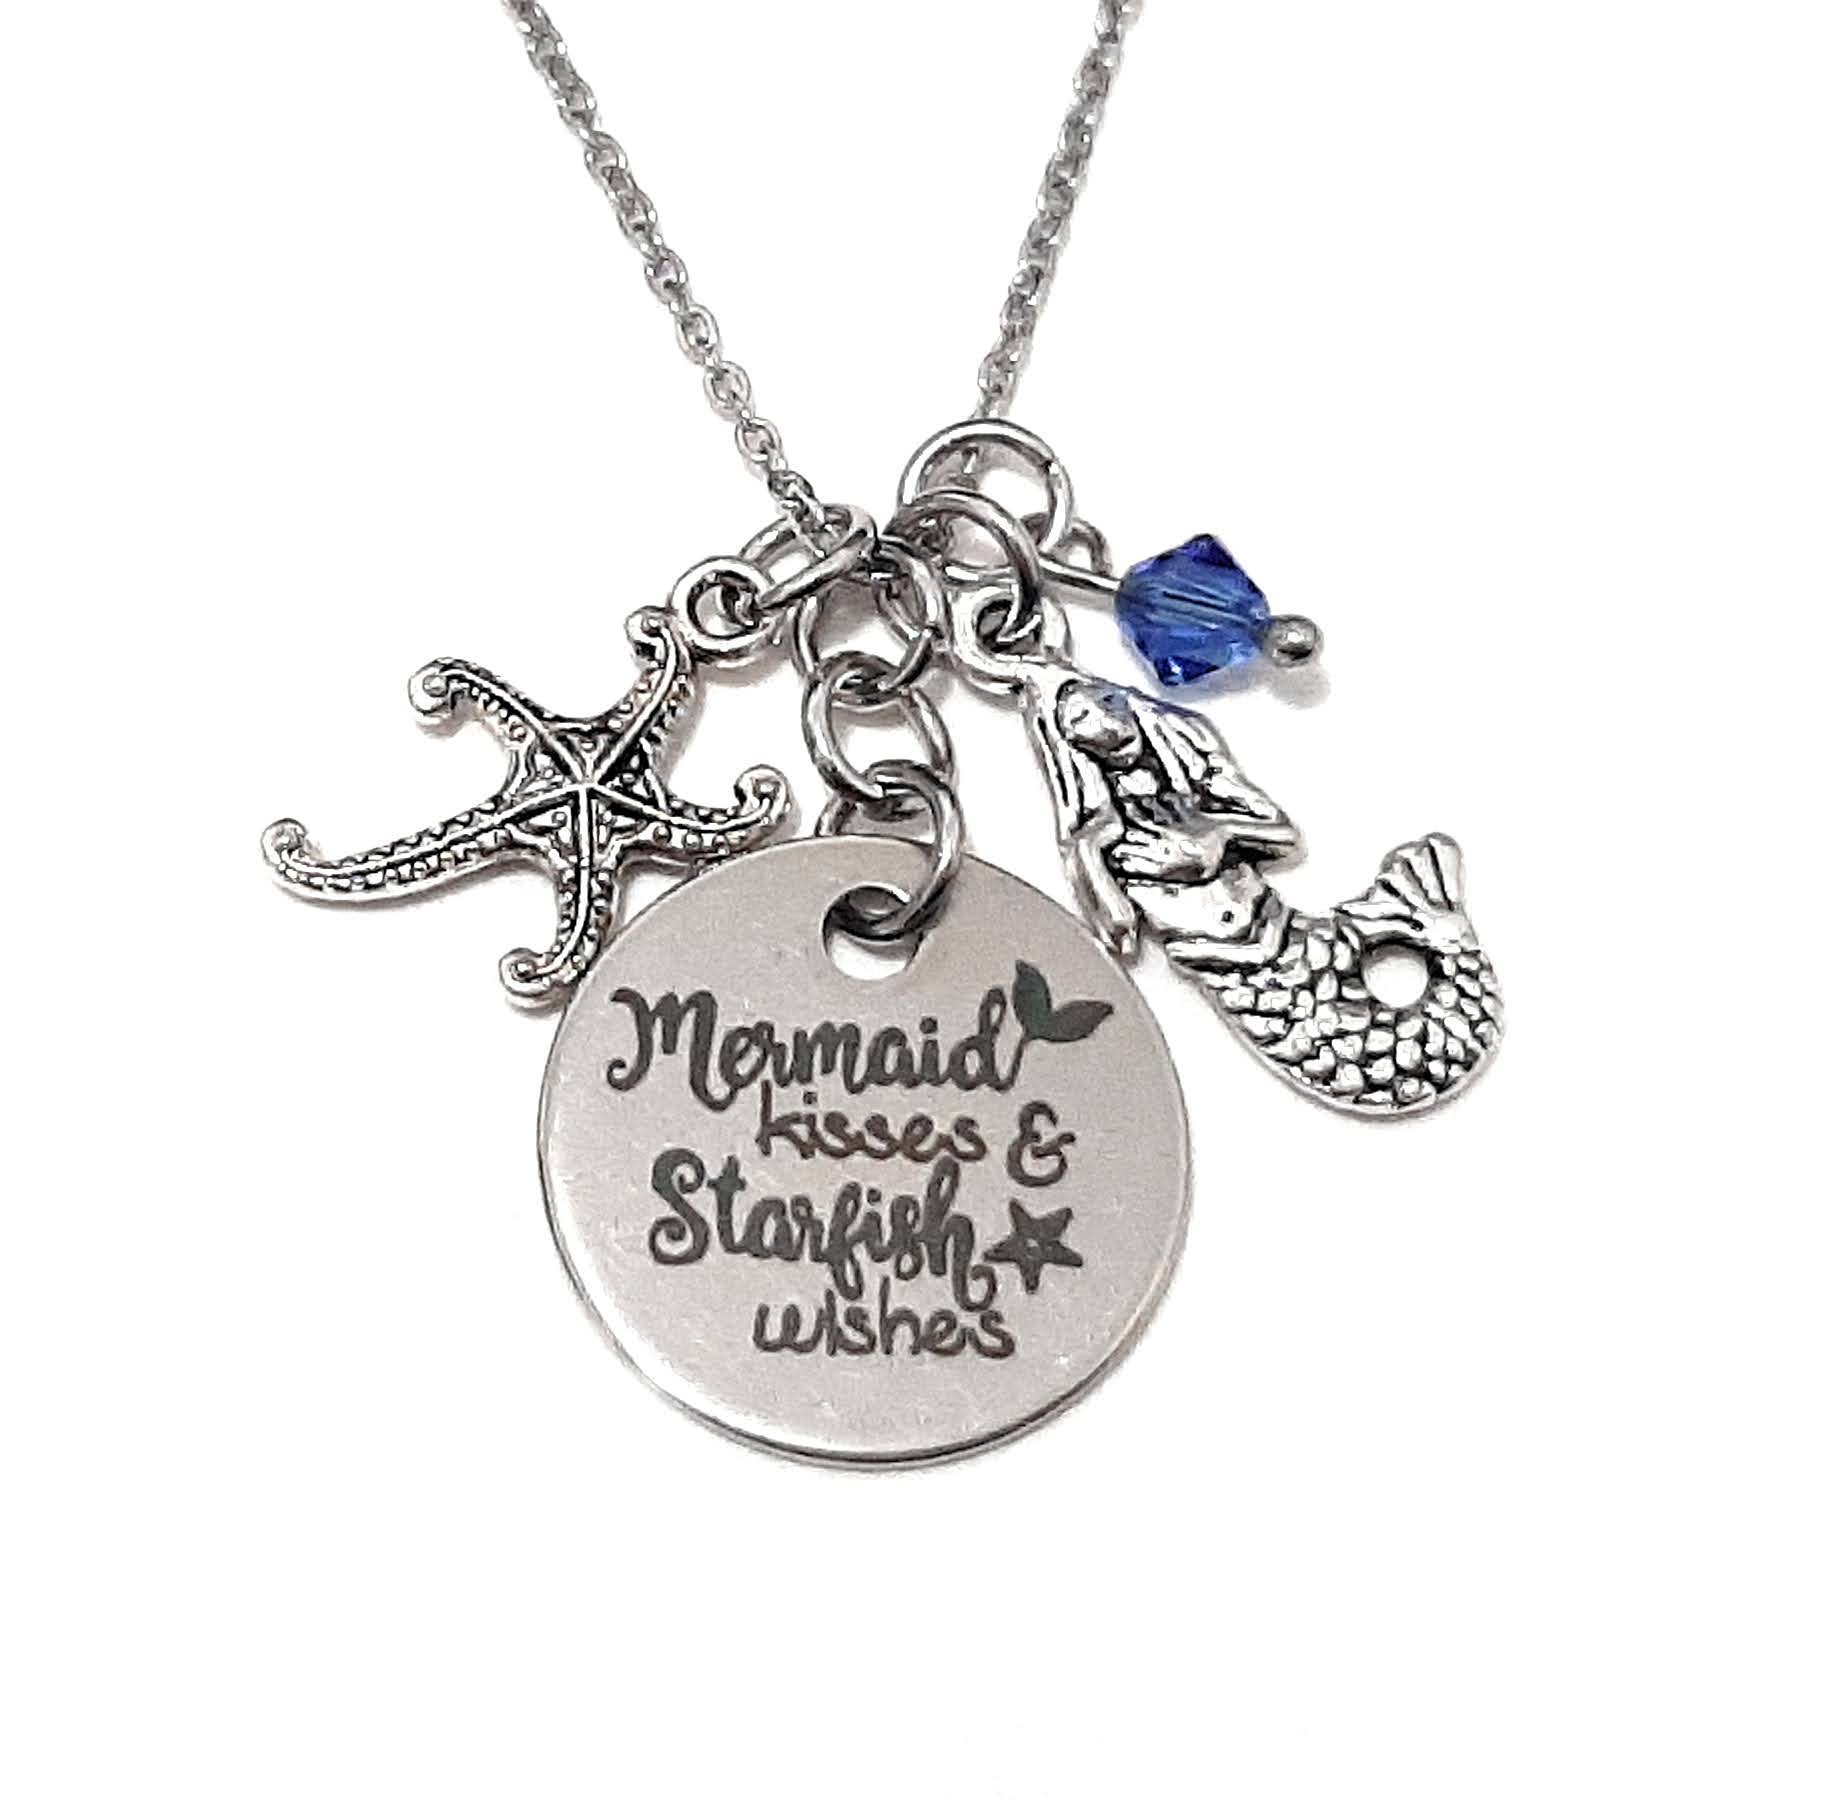 "Message Pendant Necklace ""Mermaid Kisses Starfish Wishes"" Your Choice of Charm and Birthstone Color"